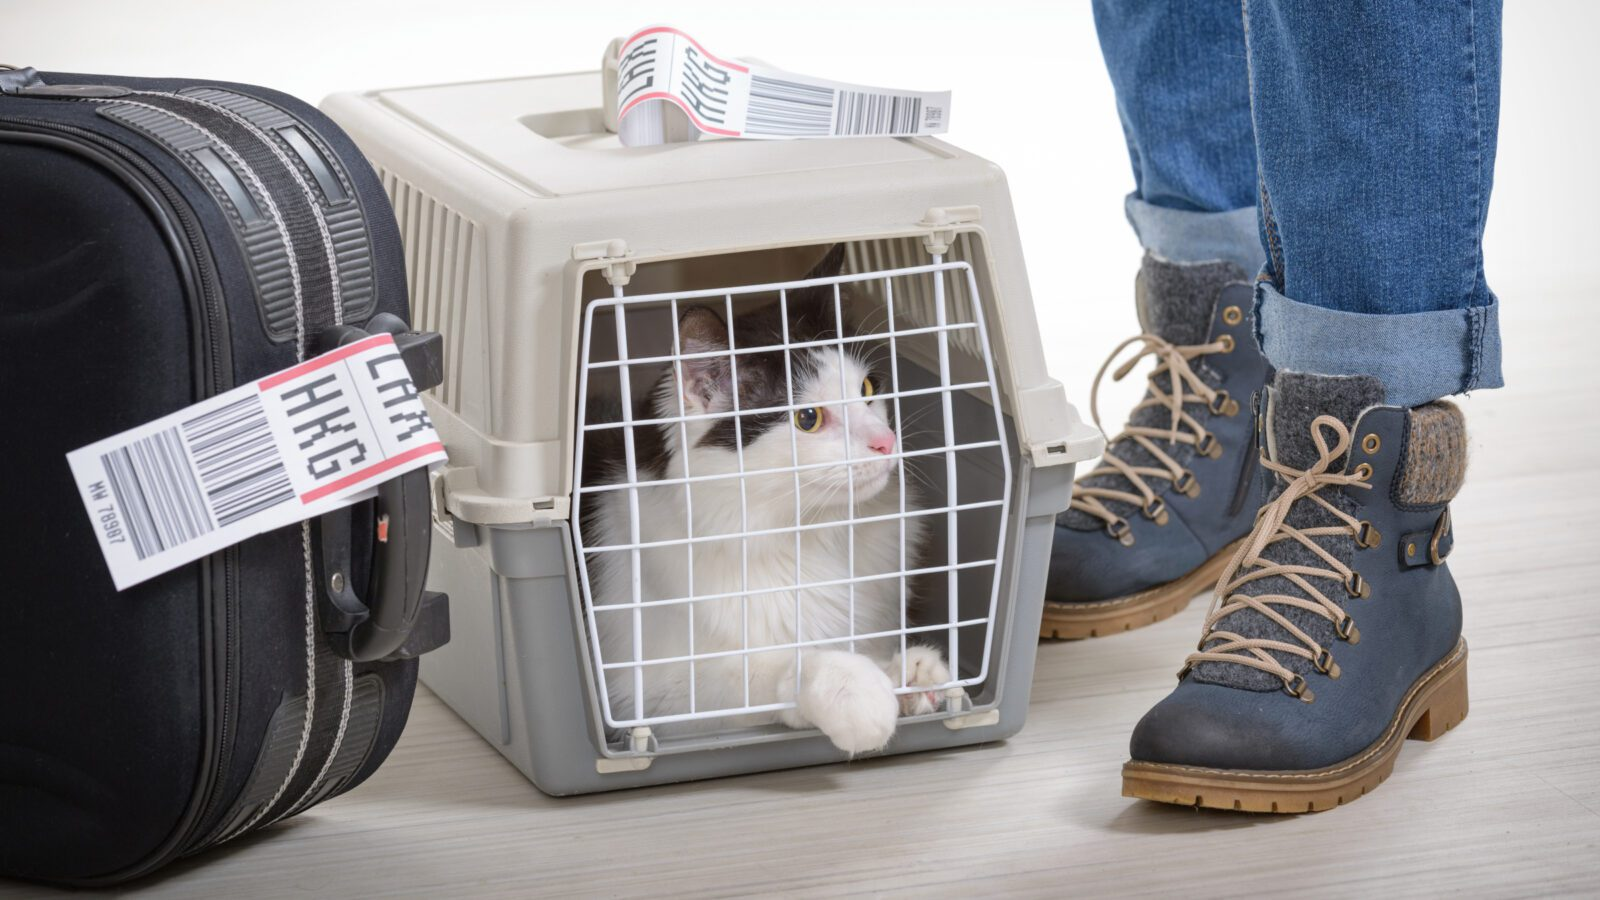 Black-and-white cat in a cream and grey cat carrier sandwiched between luggage with an LAX tag and the legs of its owner wearing low boots.